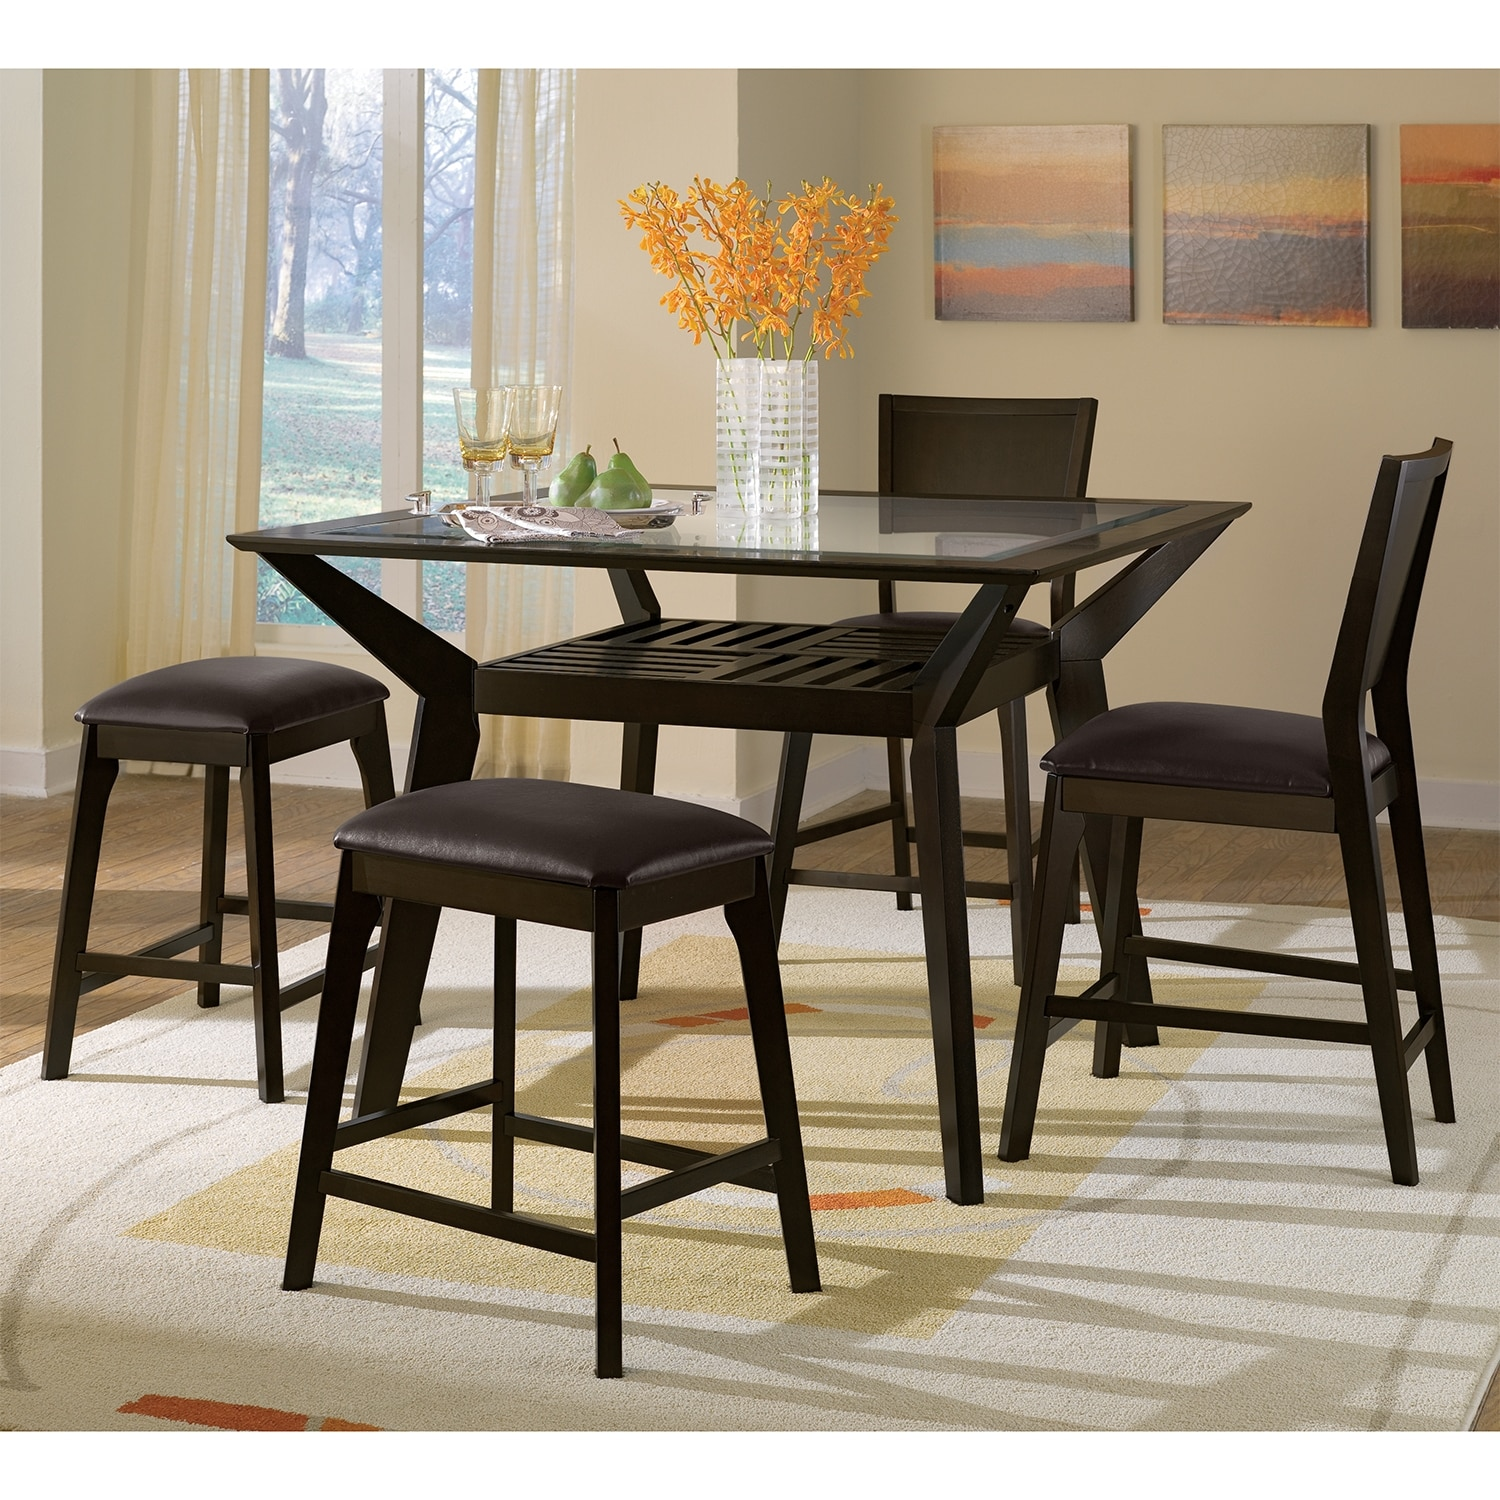 American signature furniture mystic dining room counter for Dining room table height